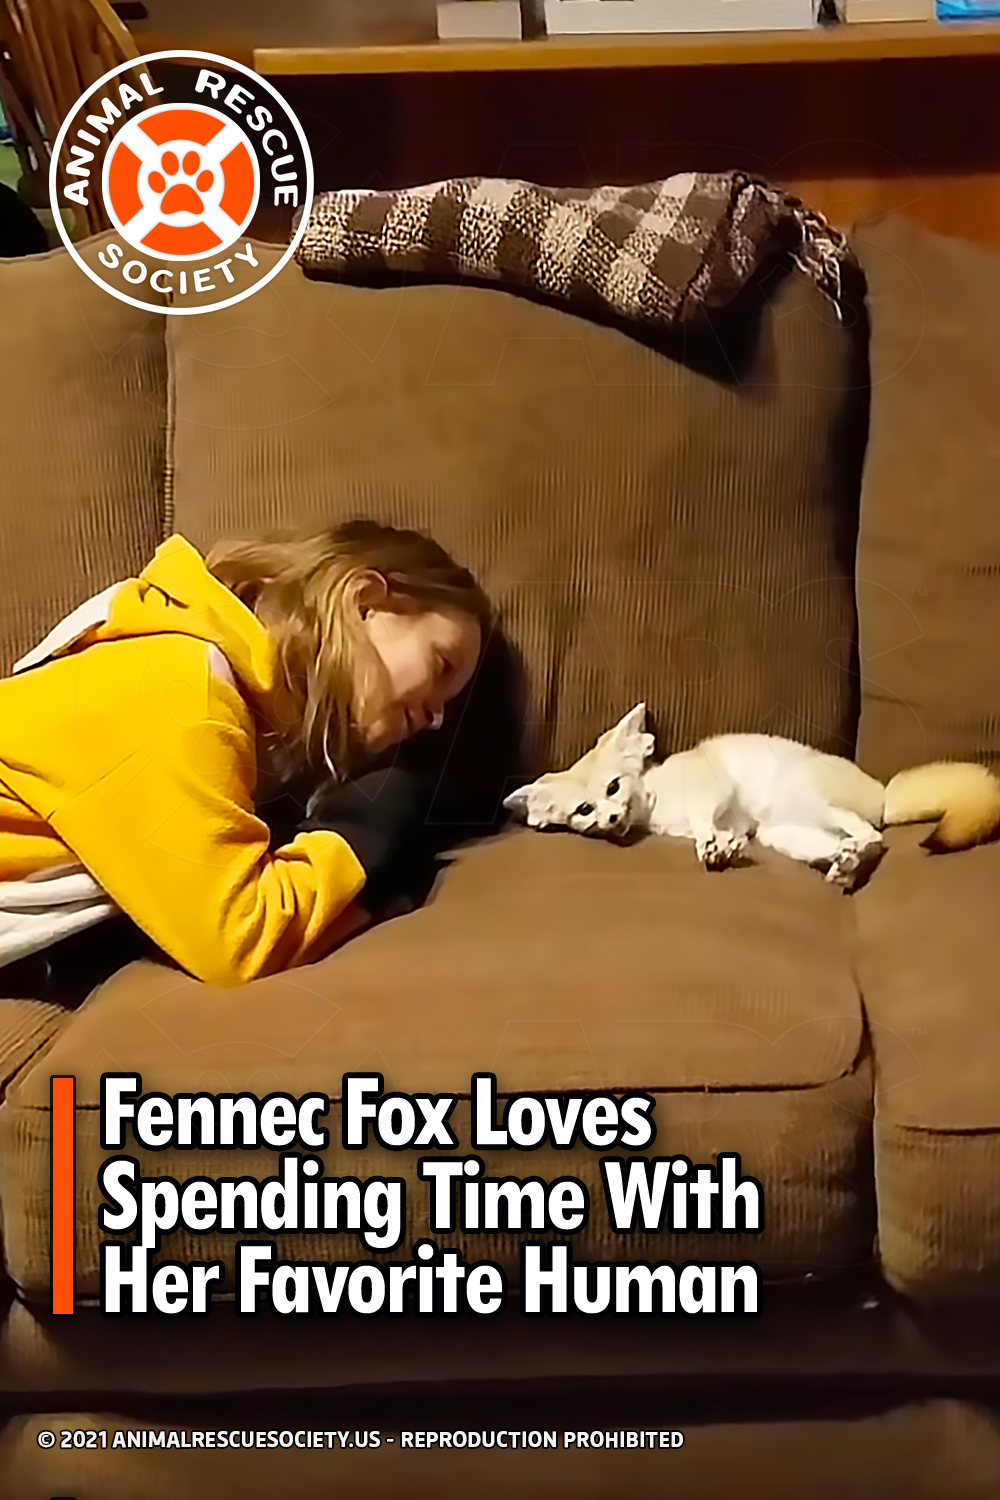 Fennec Fox Loves Spending Time With Her Favorite Human